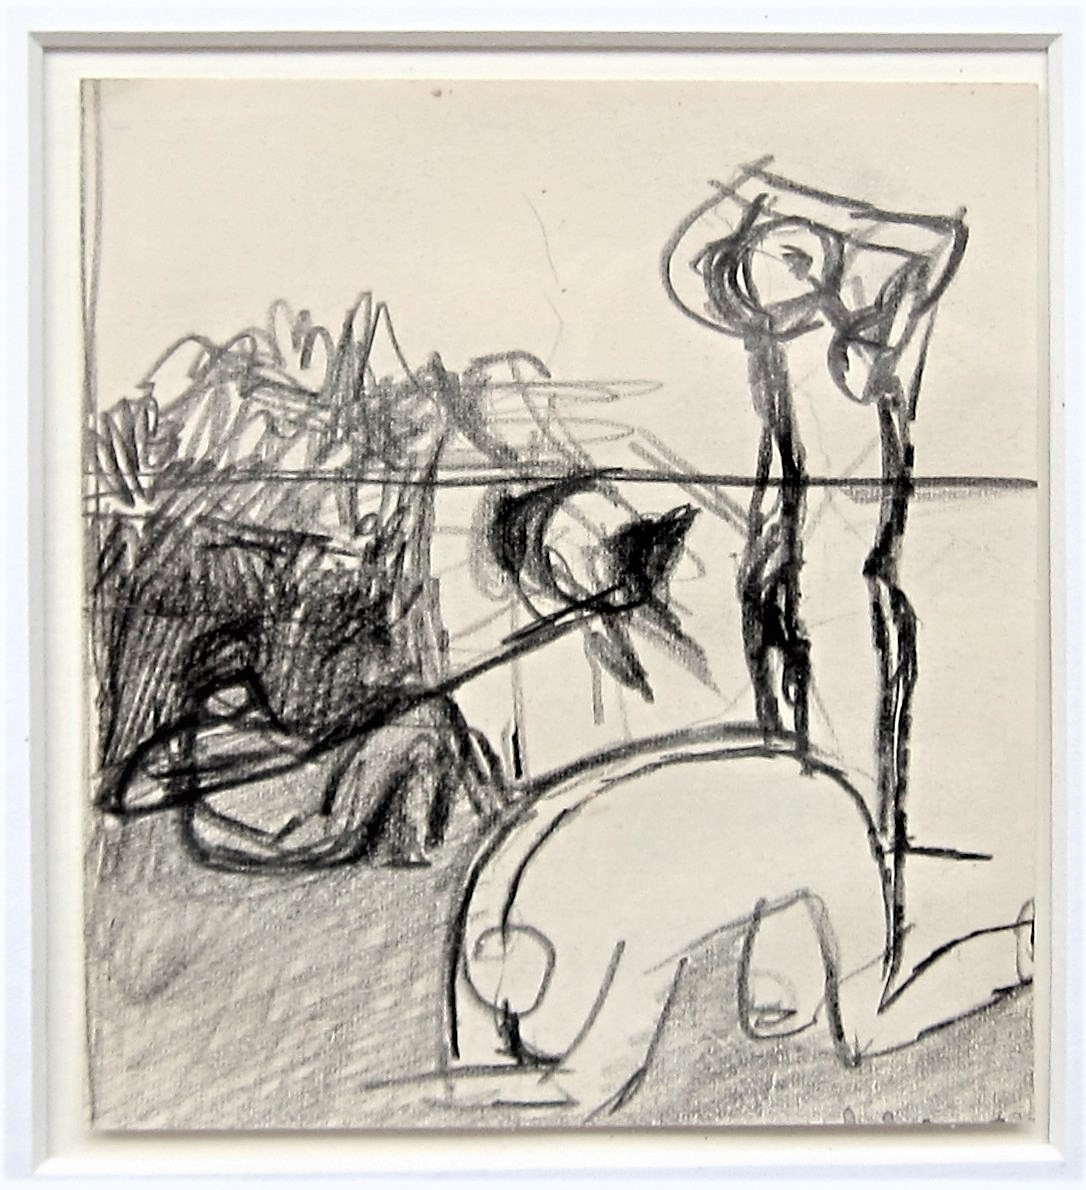 KEITH VAUGHAN [1912-77]. Figures. pencil on paper. 11 x 10 cm - overall including frame 28 x 27